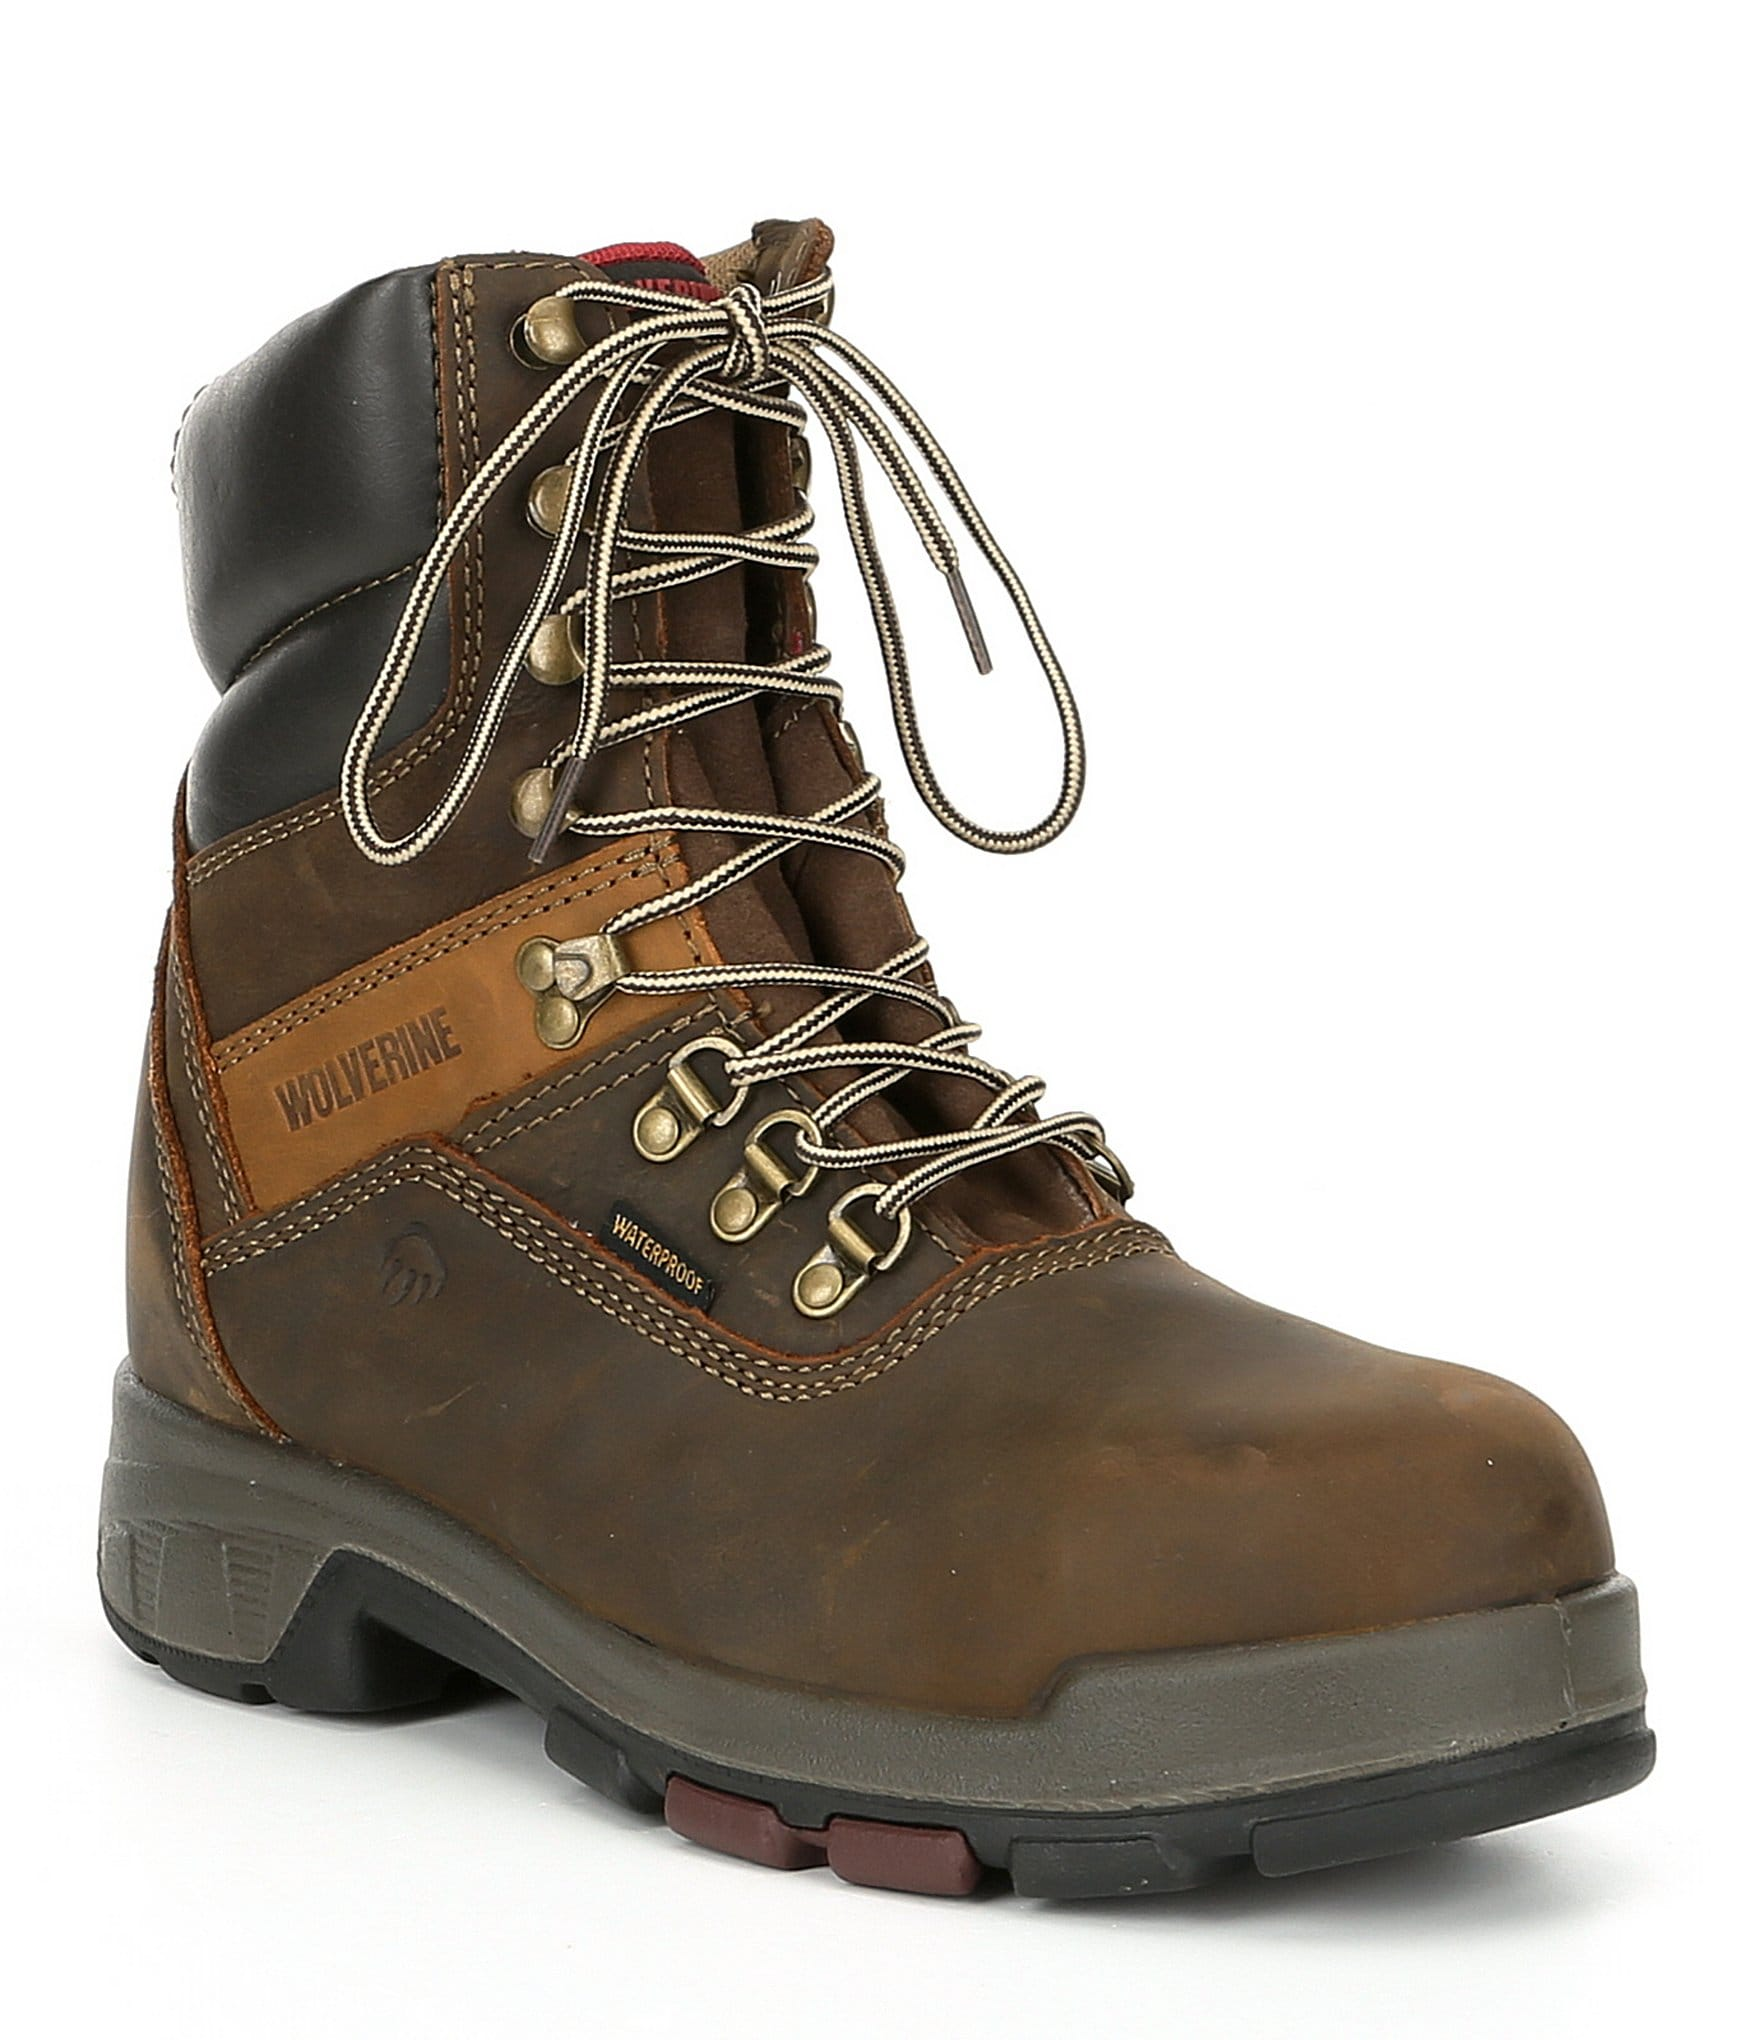 b7d5918b6f8 Wolverine Men's Cabor 8#double; Composite Toe Waterproof Slip Resistant  8#double; Work Boot